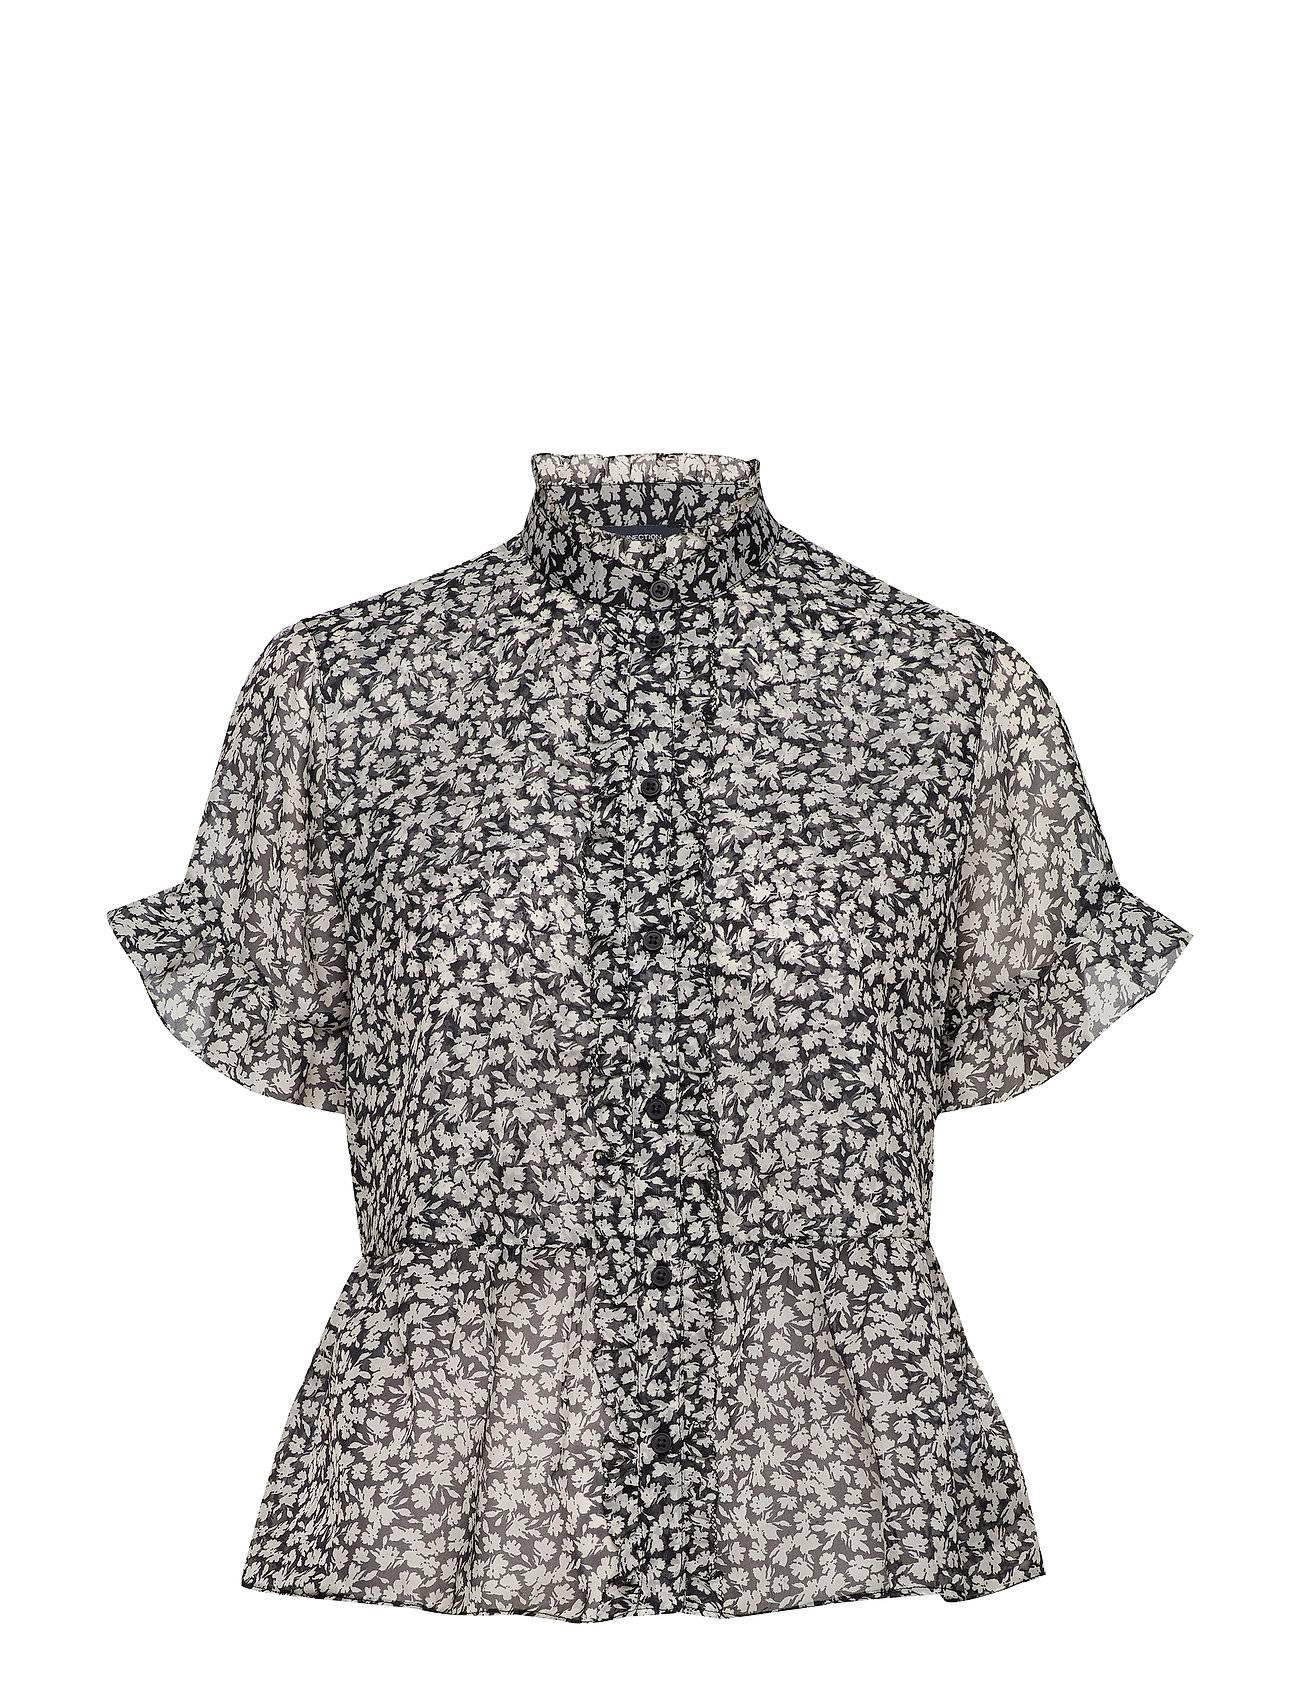 French Connection Elvire Lawn Ruffle Sleeve Blouse